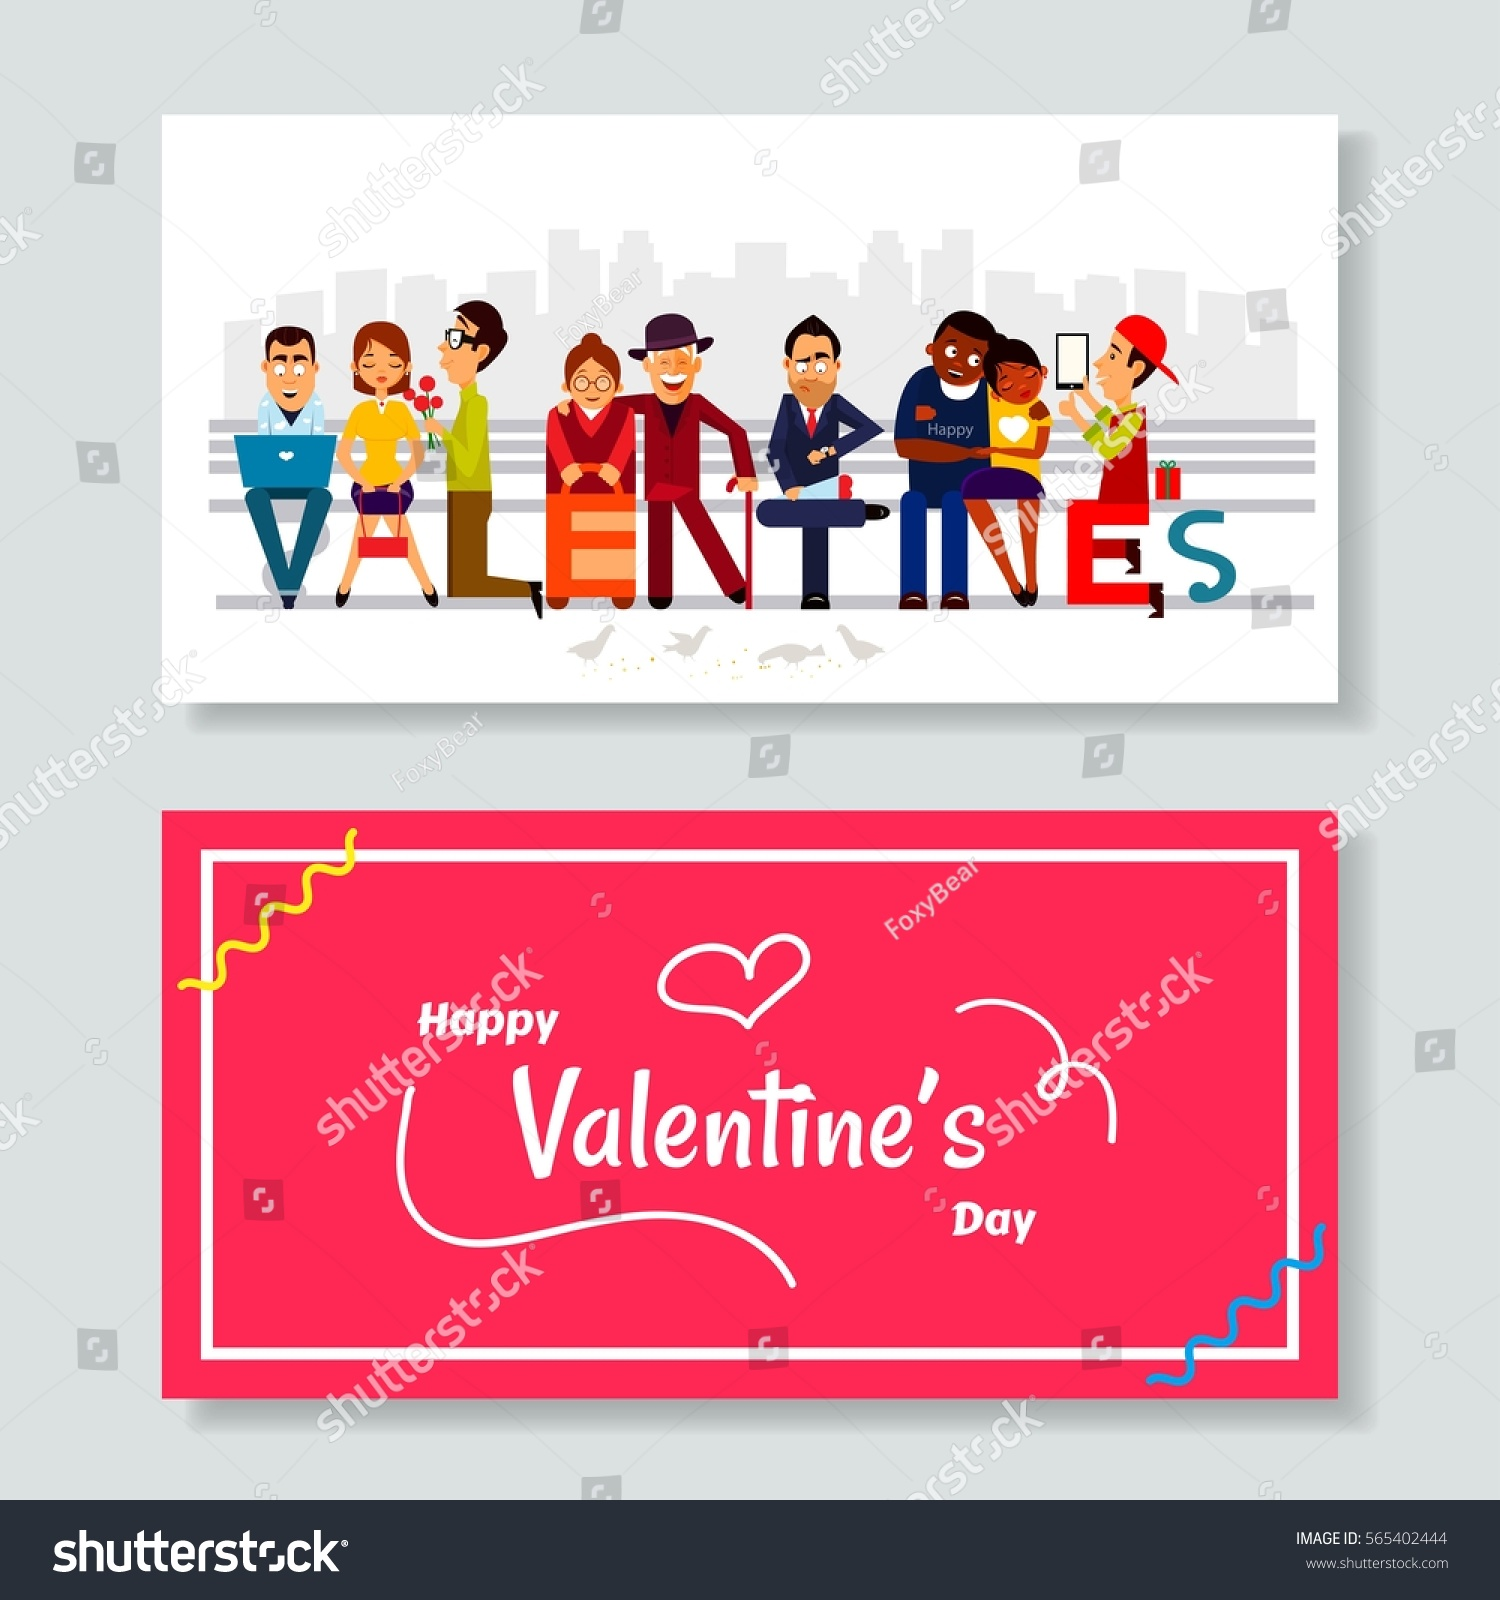 Valentine Word Illustrated Peoples Young Old Stock Vector Royalty